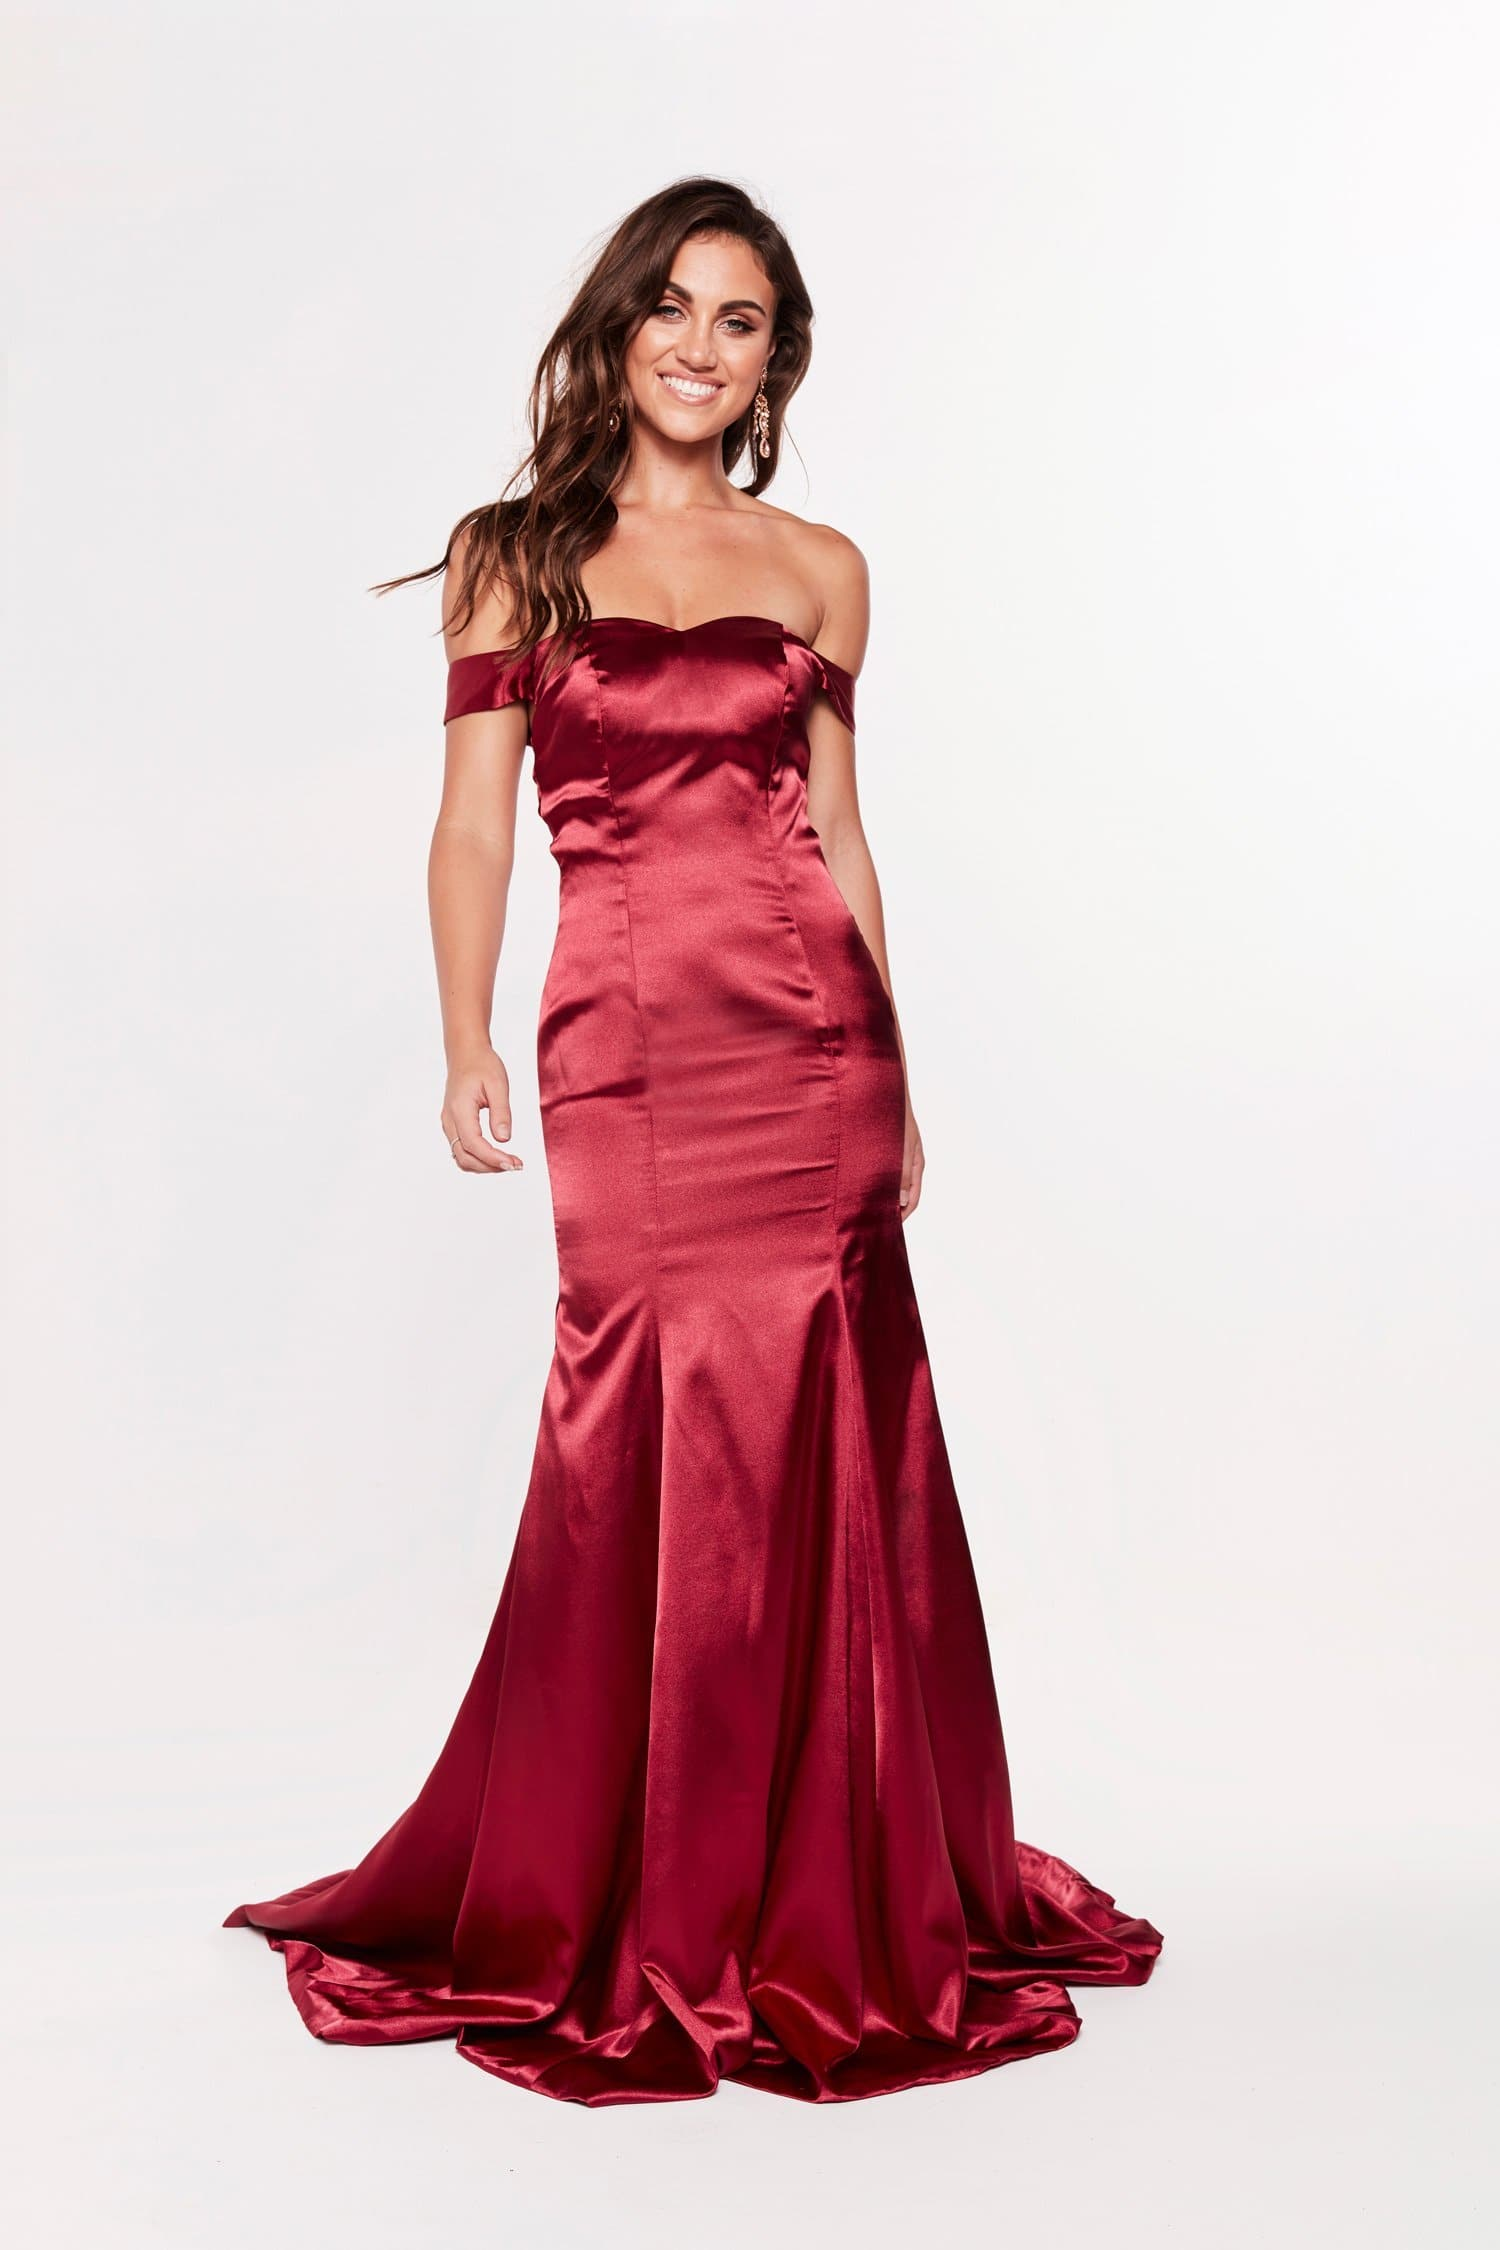 A&N Nivi - Burgundy Satin Gown with Off-Shoulder Sleeves